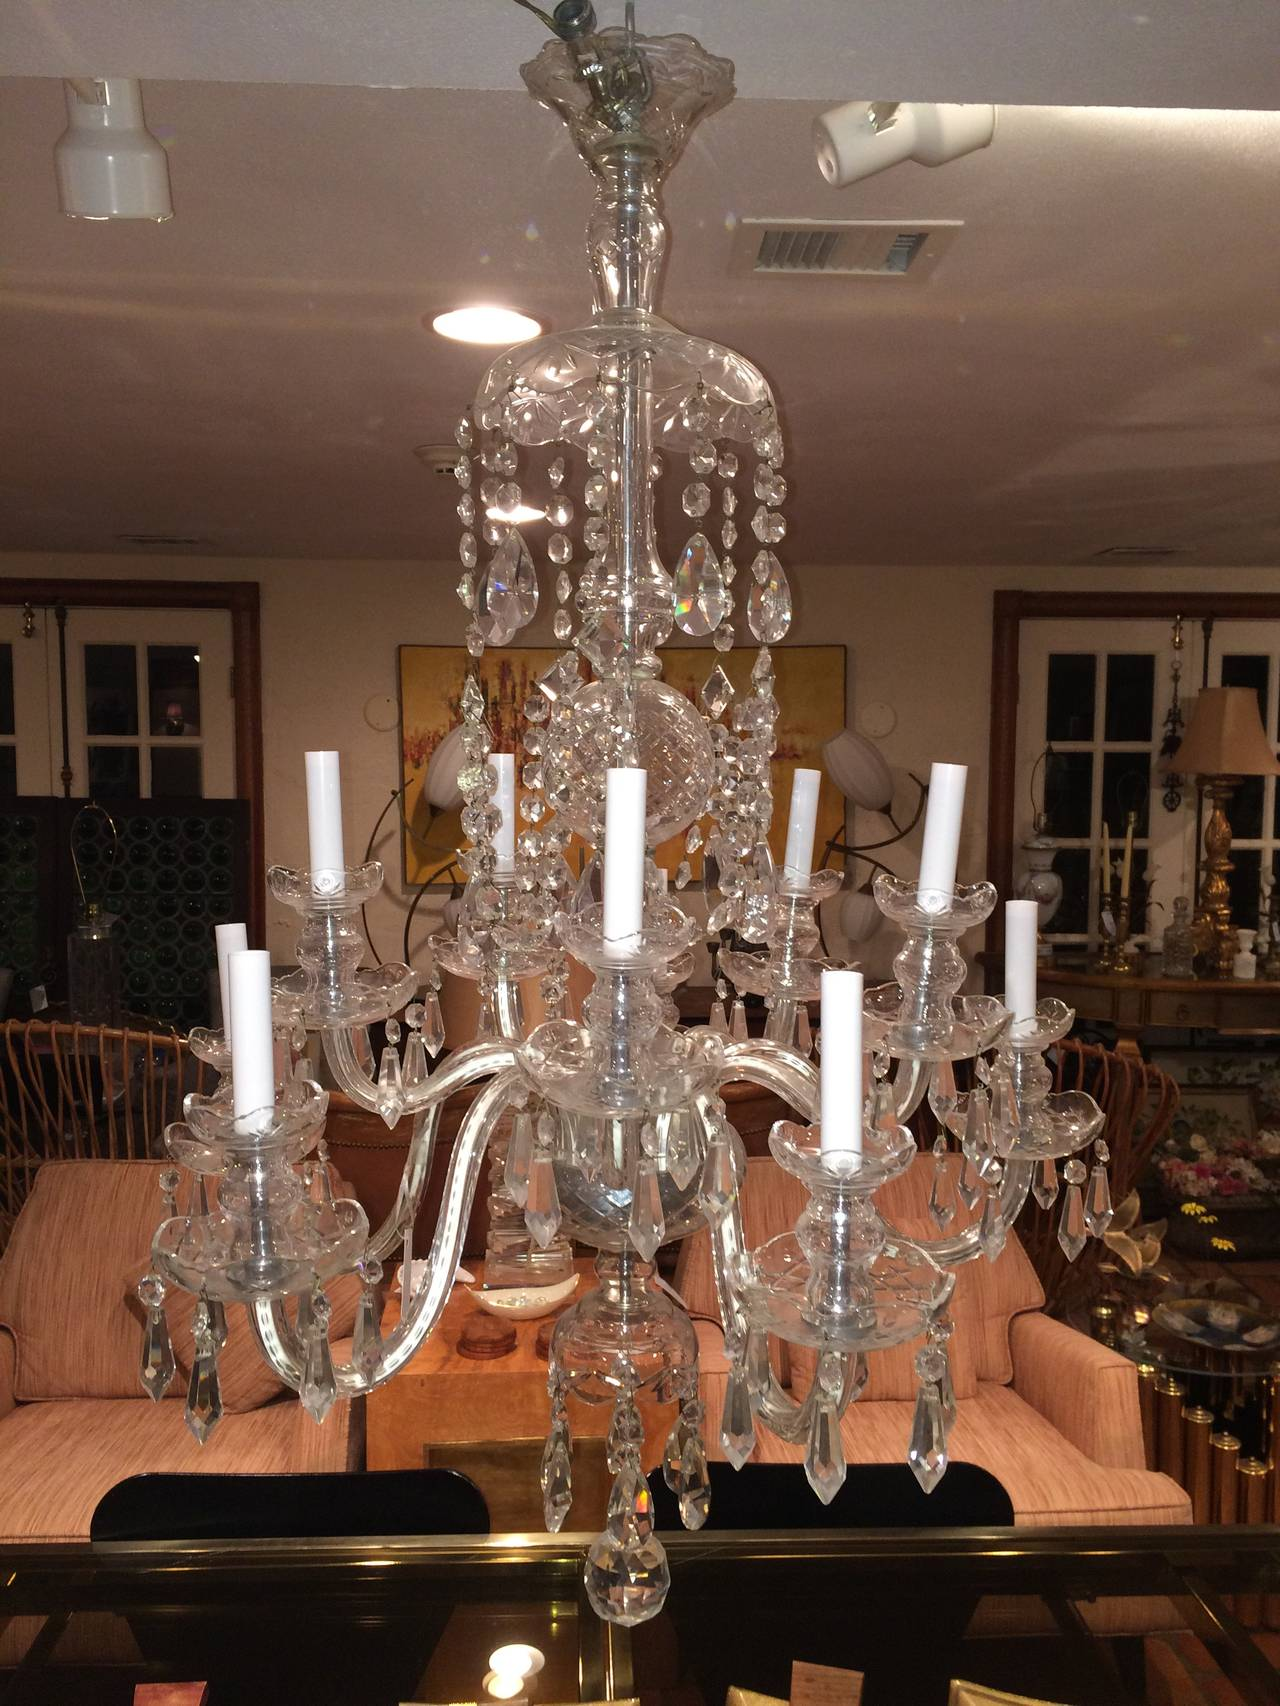 Elegant ten arm crystal chandelier in the style of waterford at 1stdibs irish elegant ten arm crystal chandelier in the style of waterford for sale aloadofball Image collections